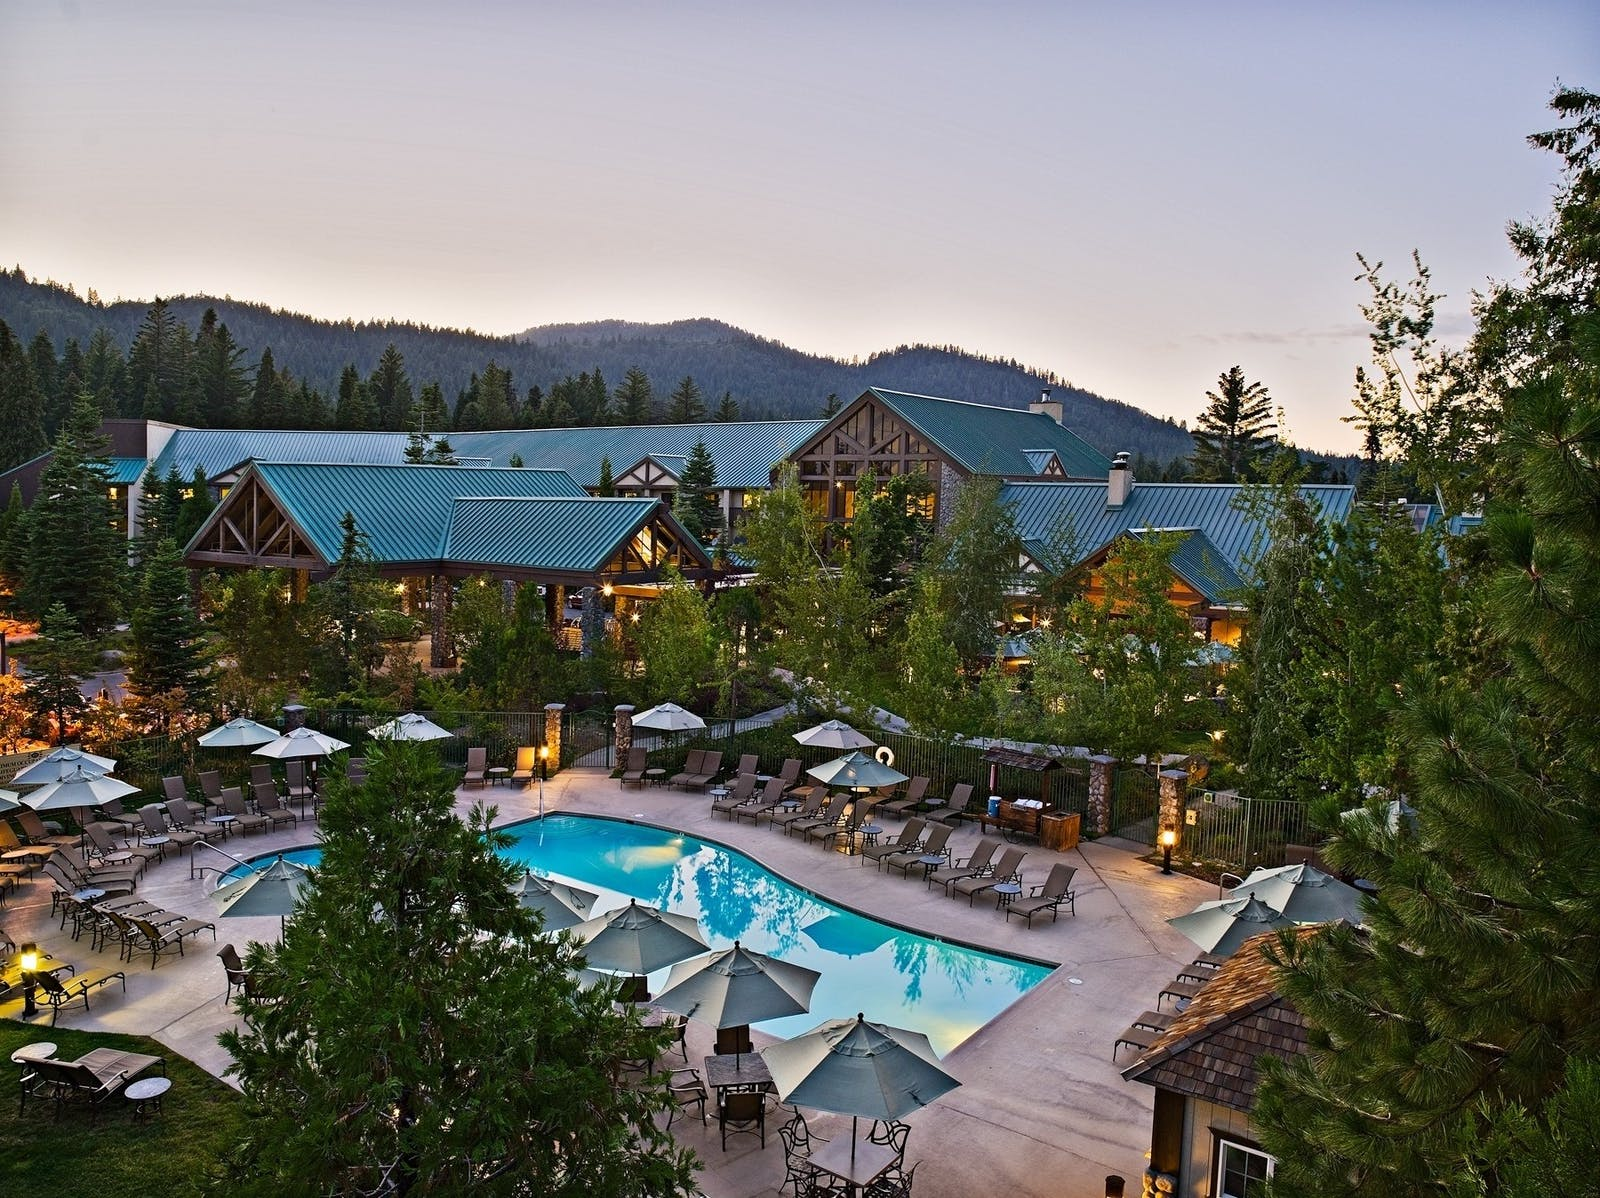 Pool View at Tenaya Lodge, California